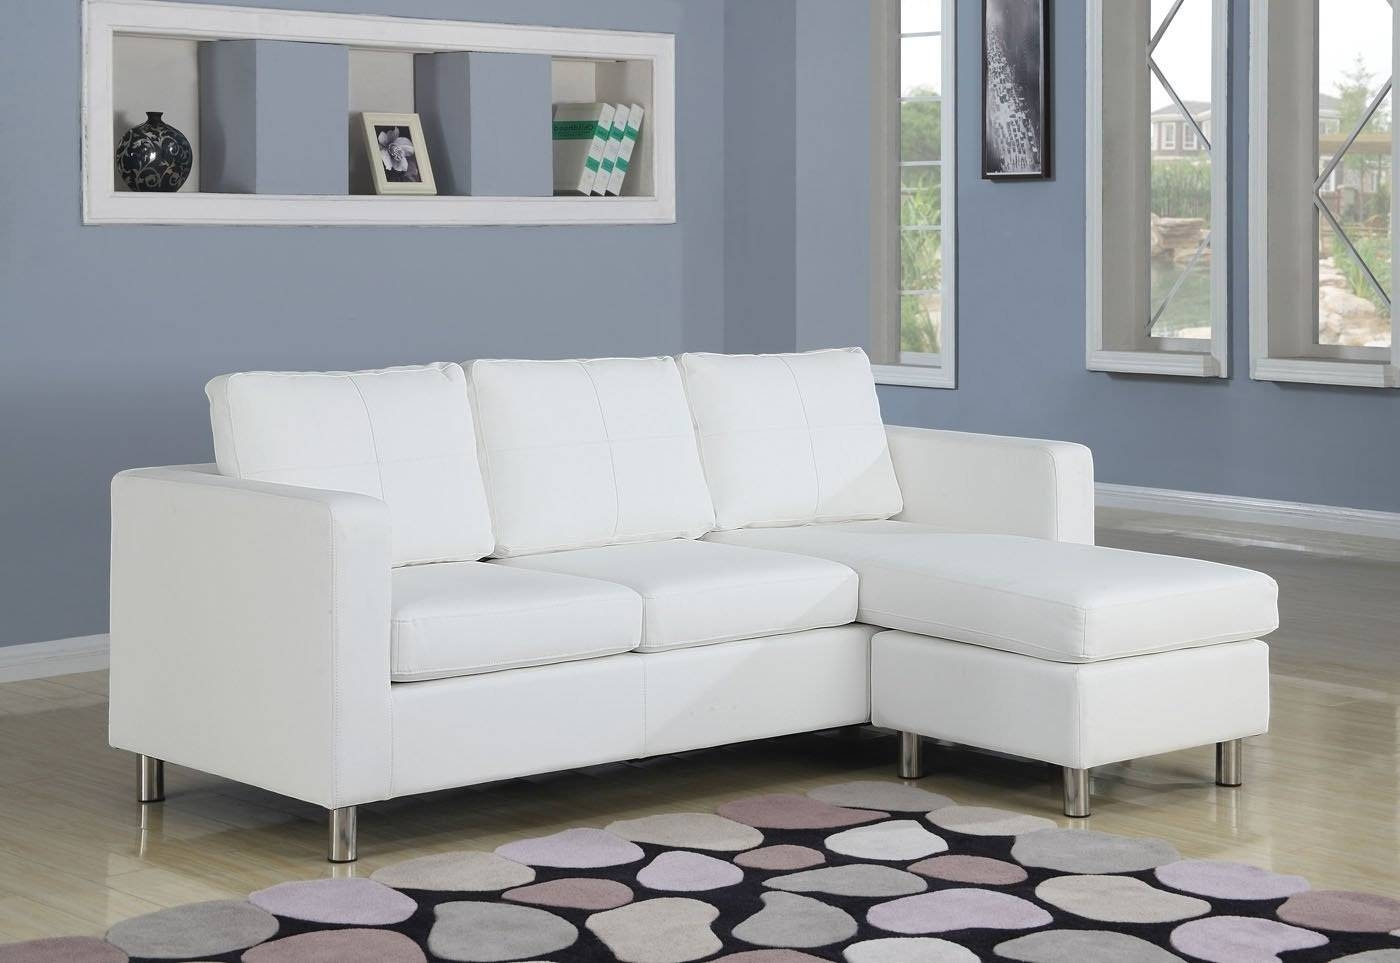 Small Sectional Sofa With Chaise: Perfect Choice For A Small Space regarding Sectional Sofas in Small Spaces (Image 20 of 25)